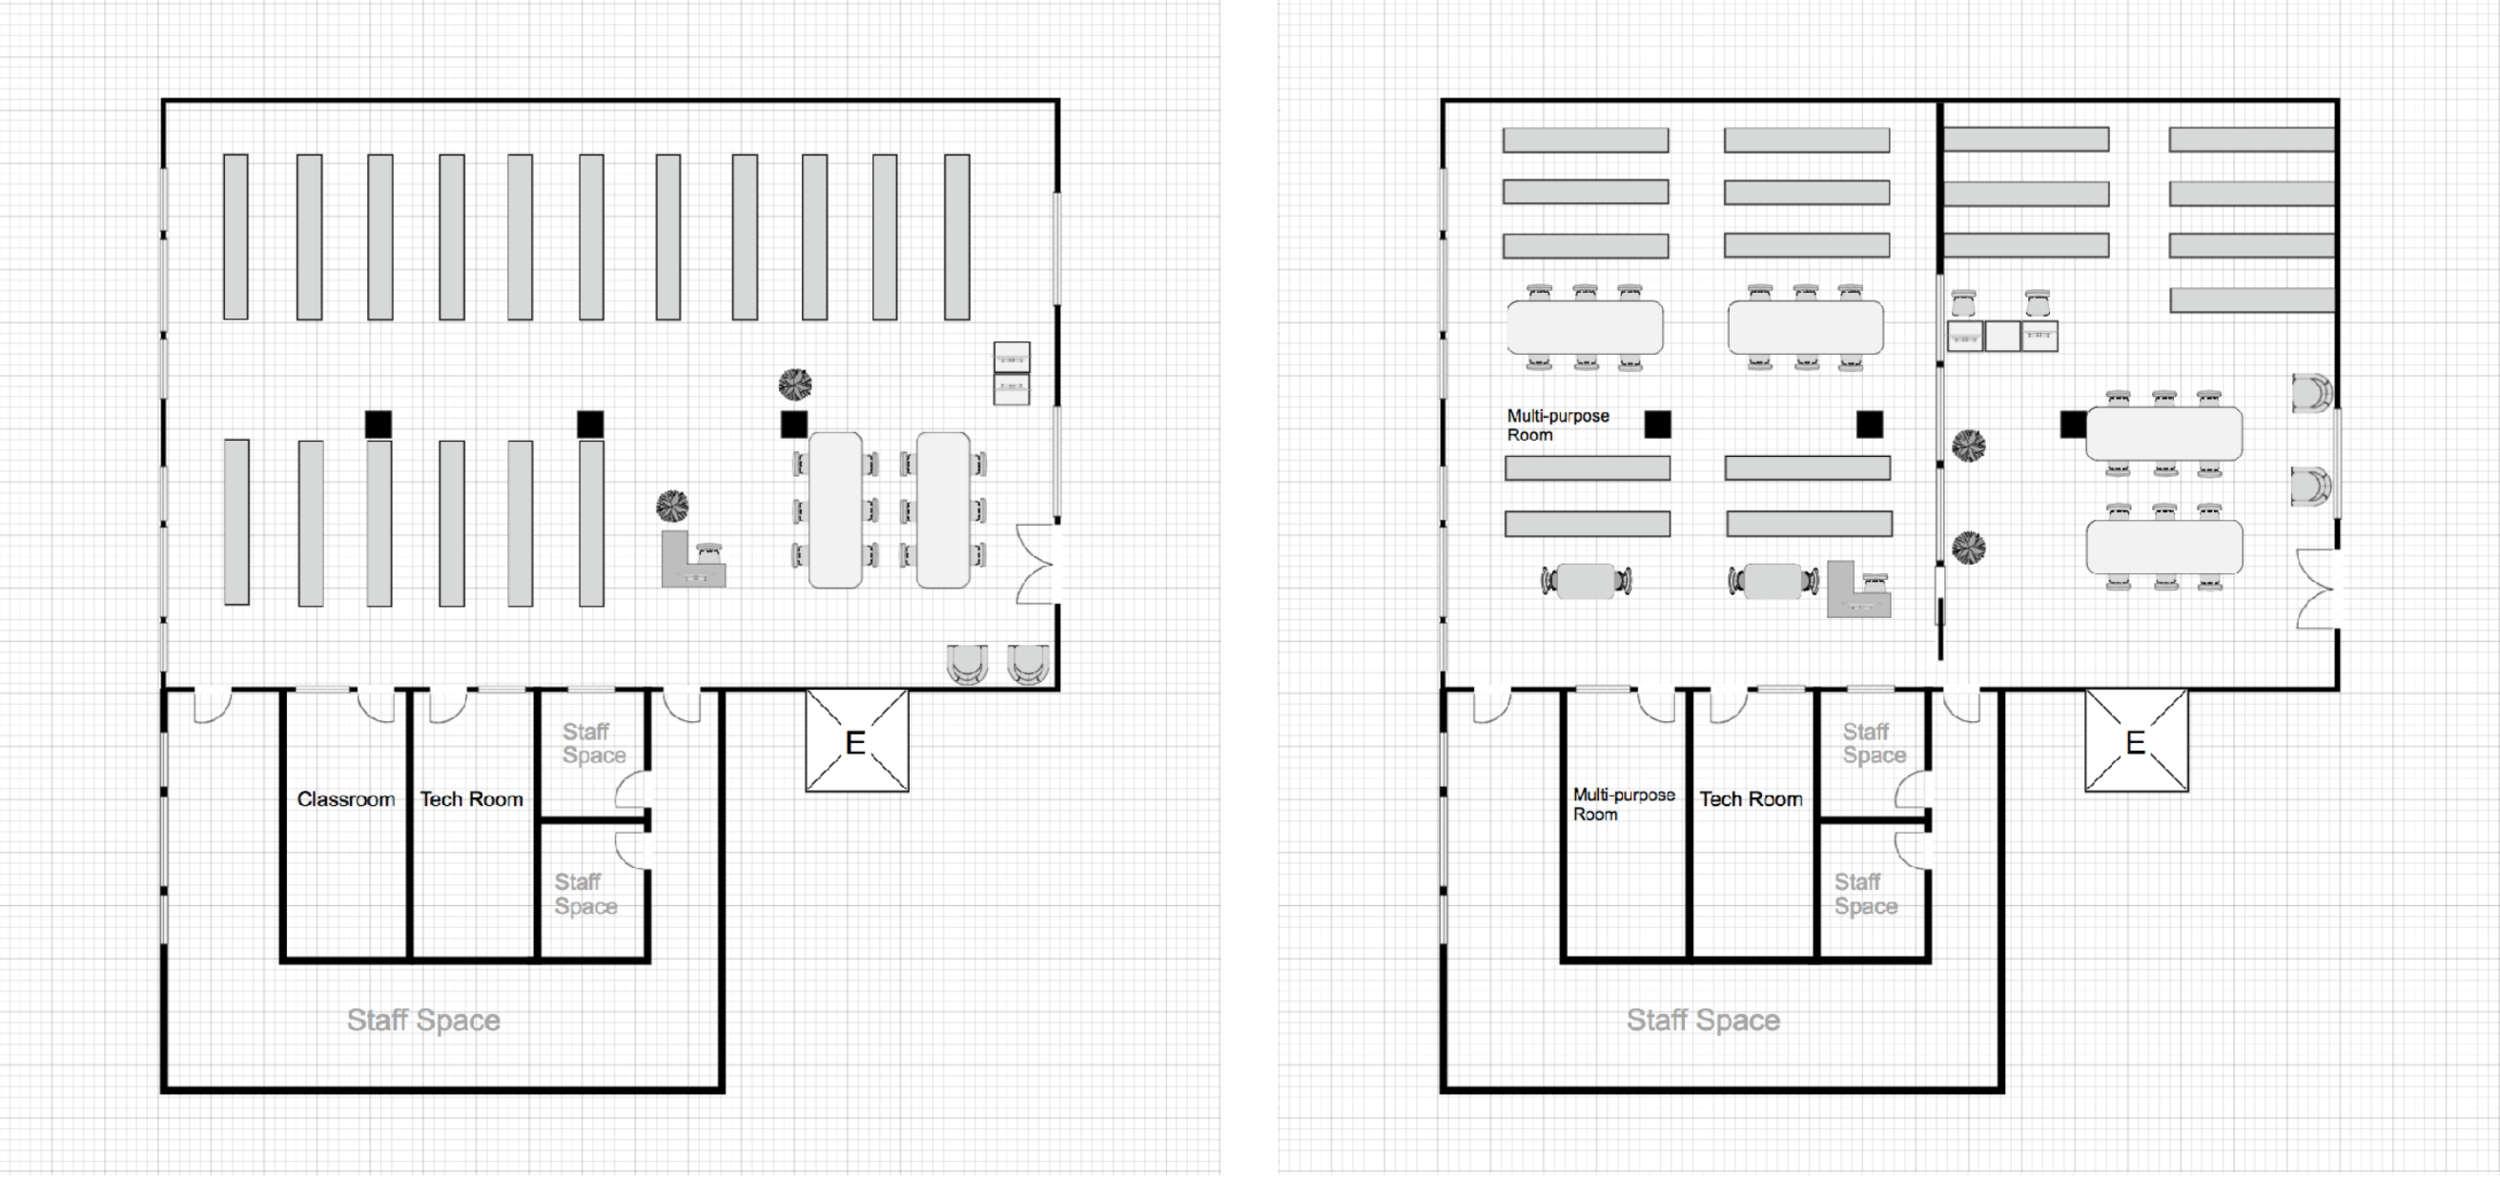 Existing floor plan (left), new design (right).